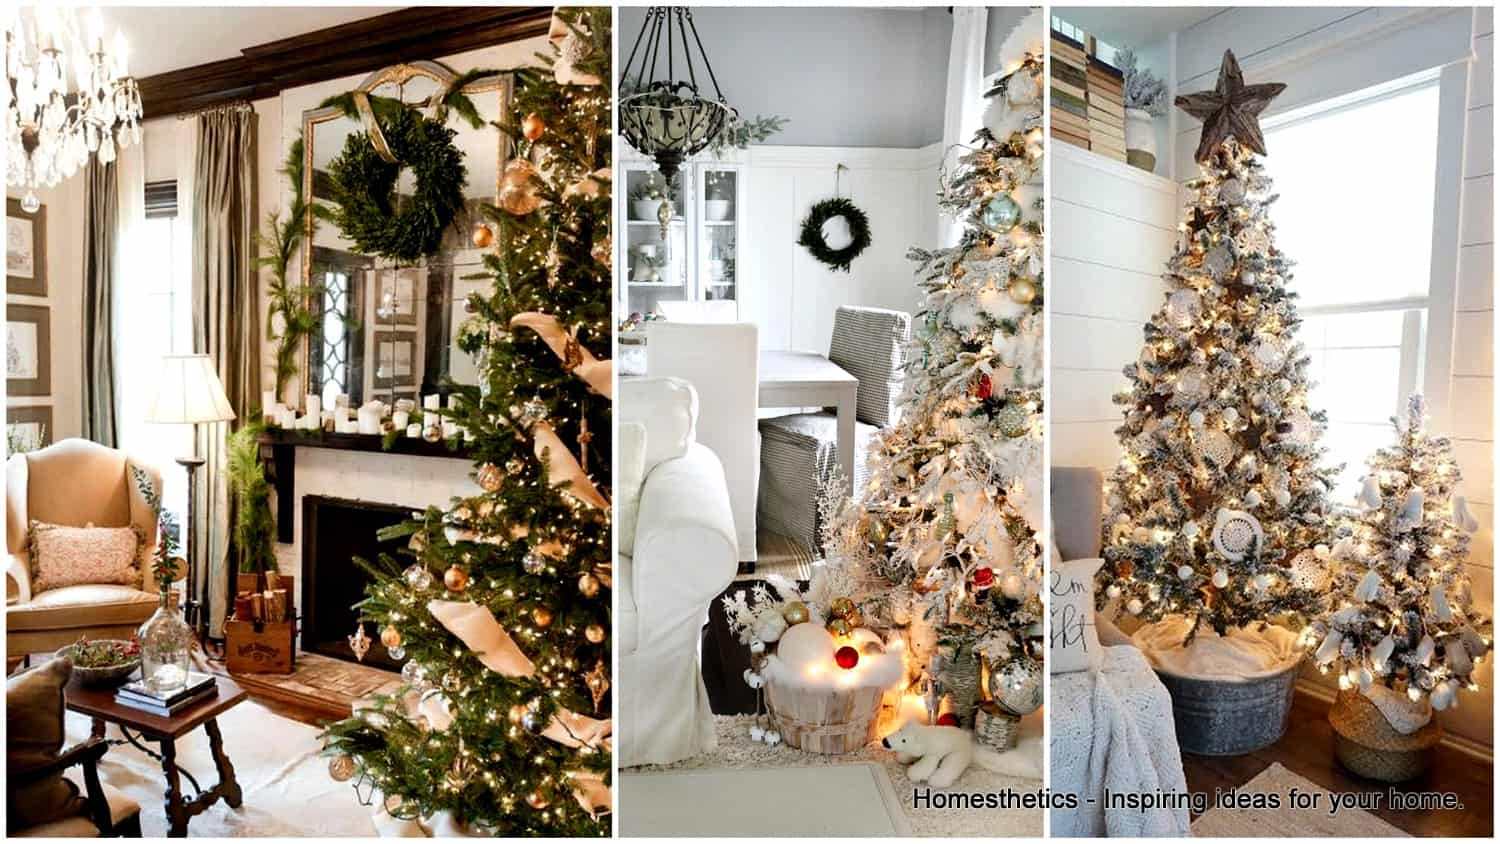 The Simple Guide To The Best Christmas Interiors - Homesthetics ...